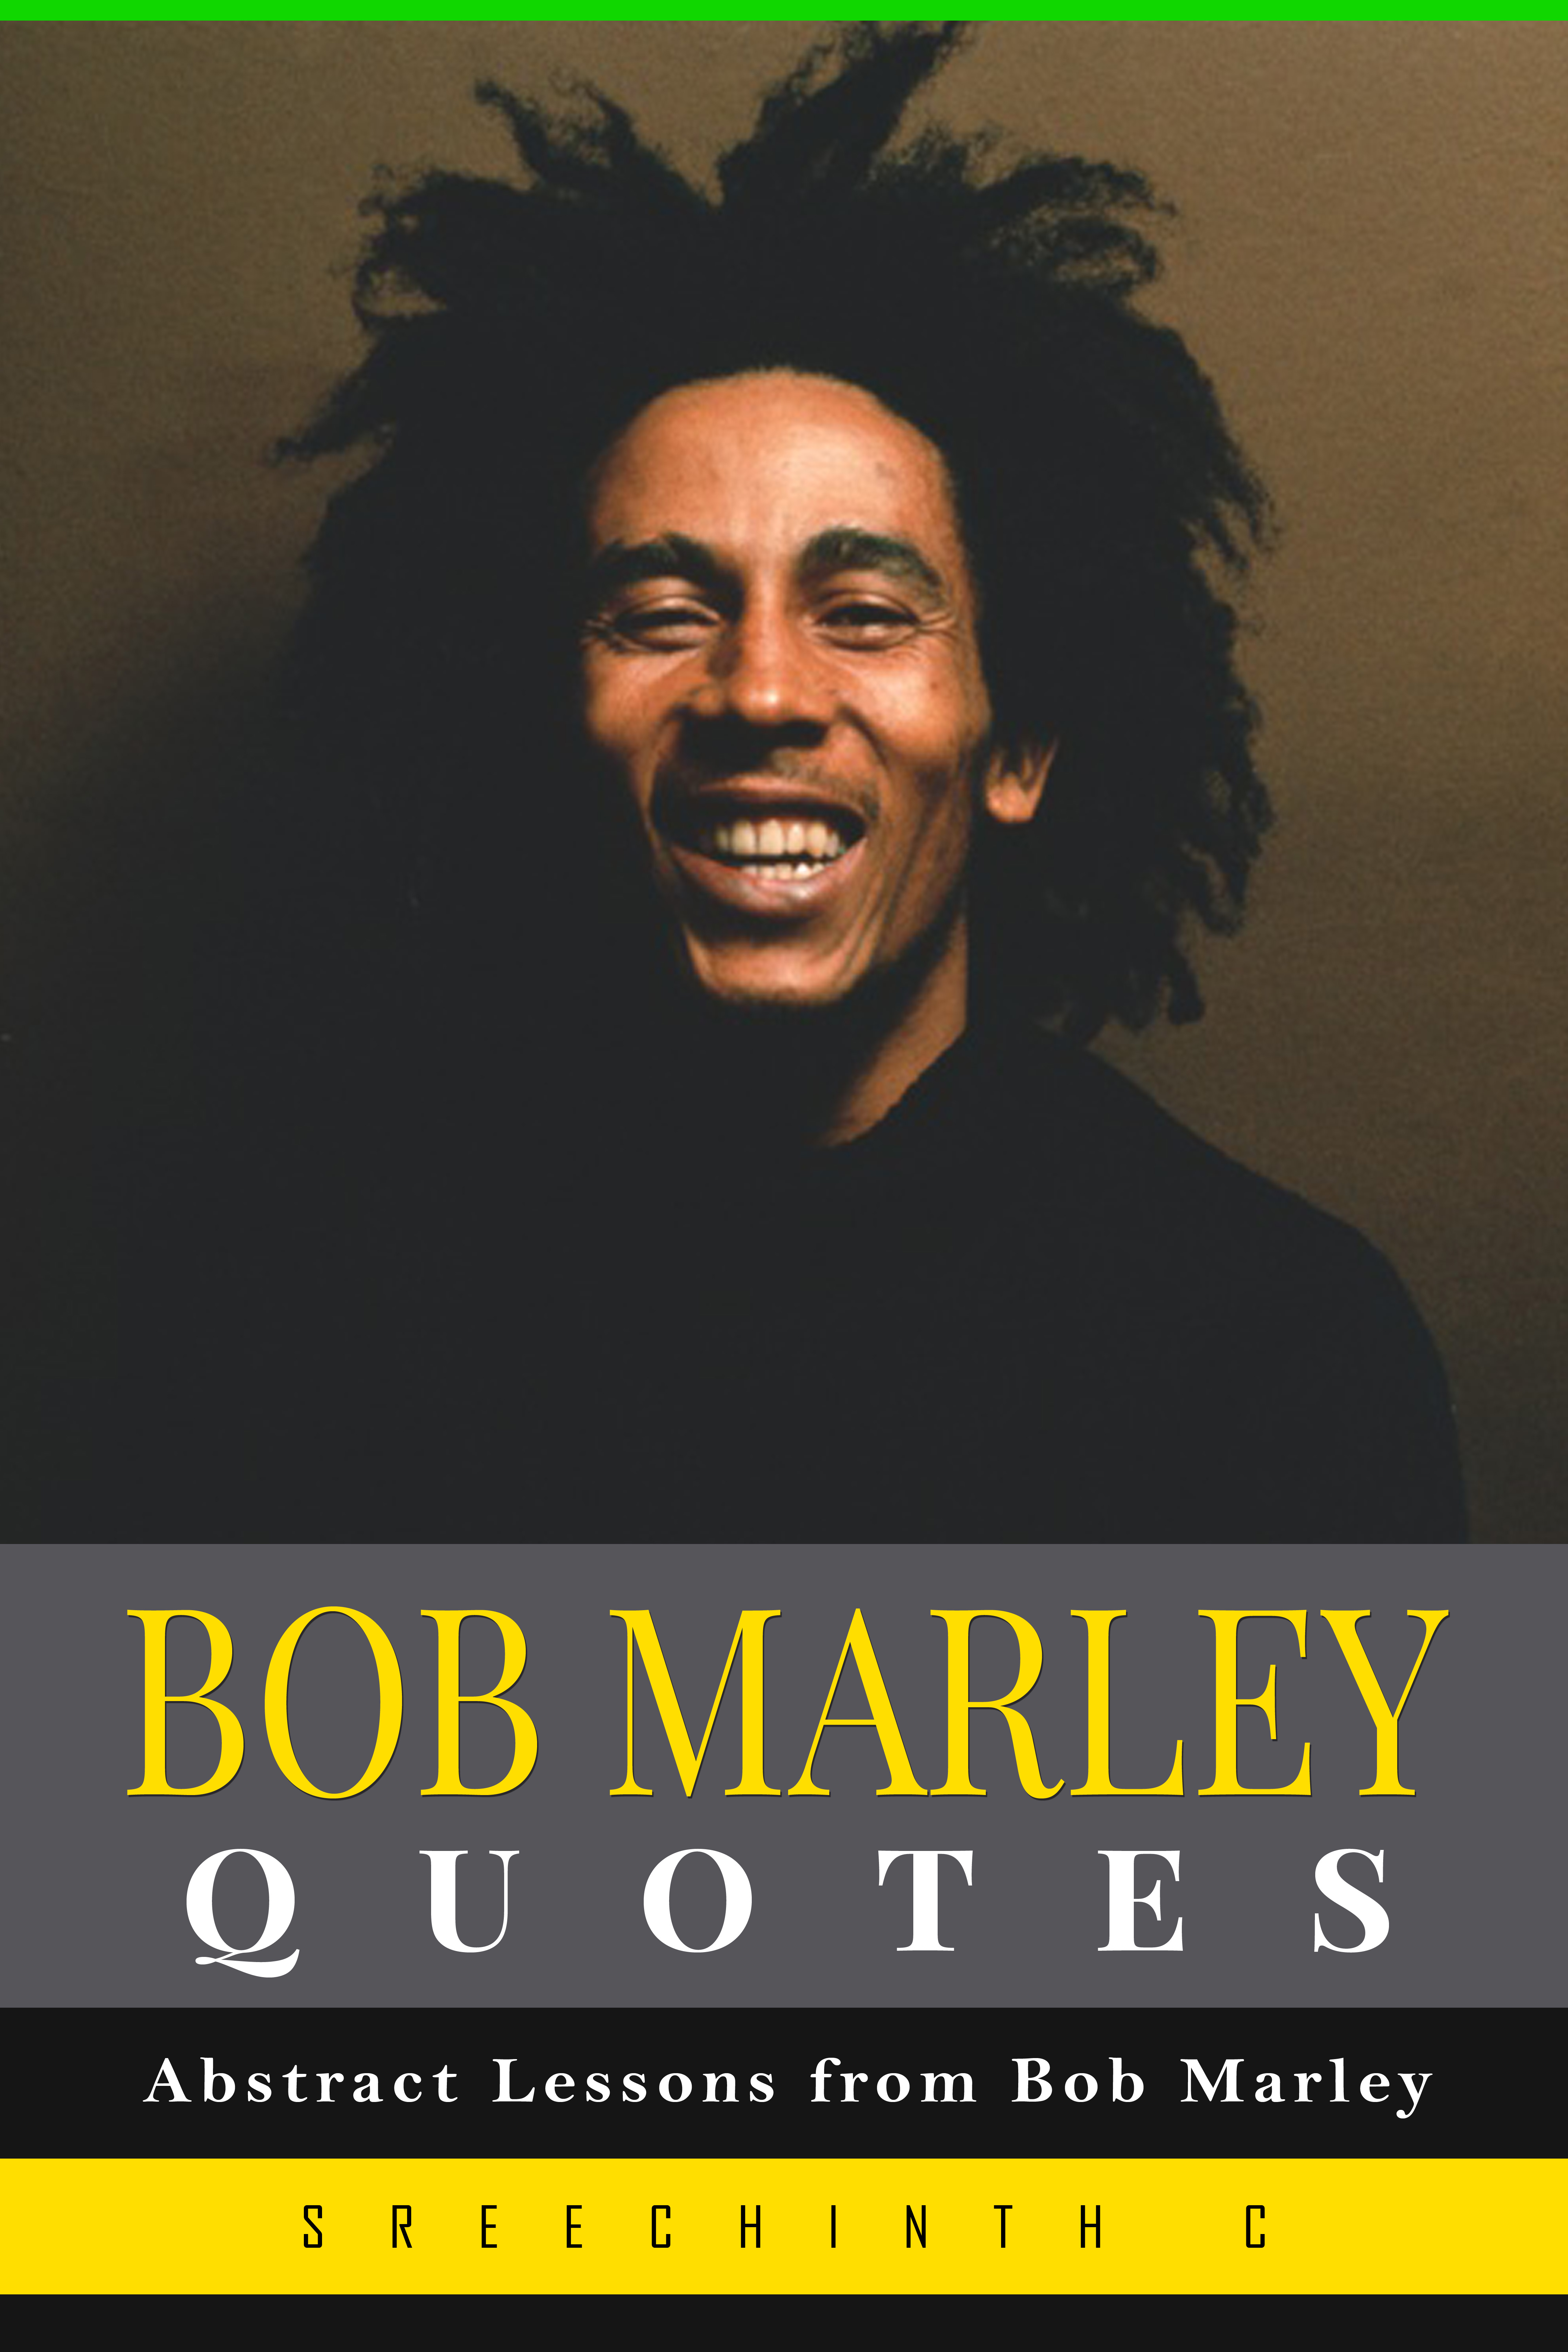 quotes by bob marley.html